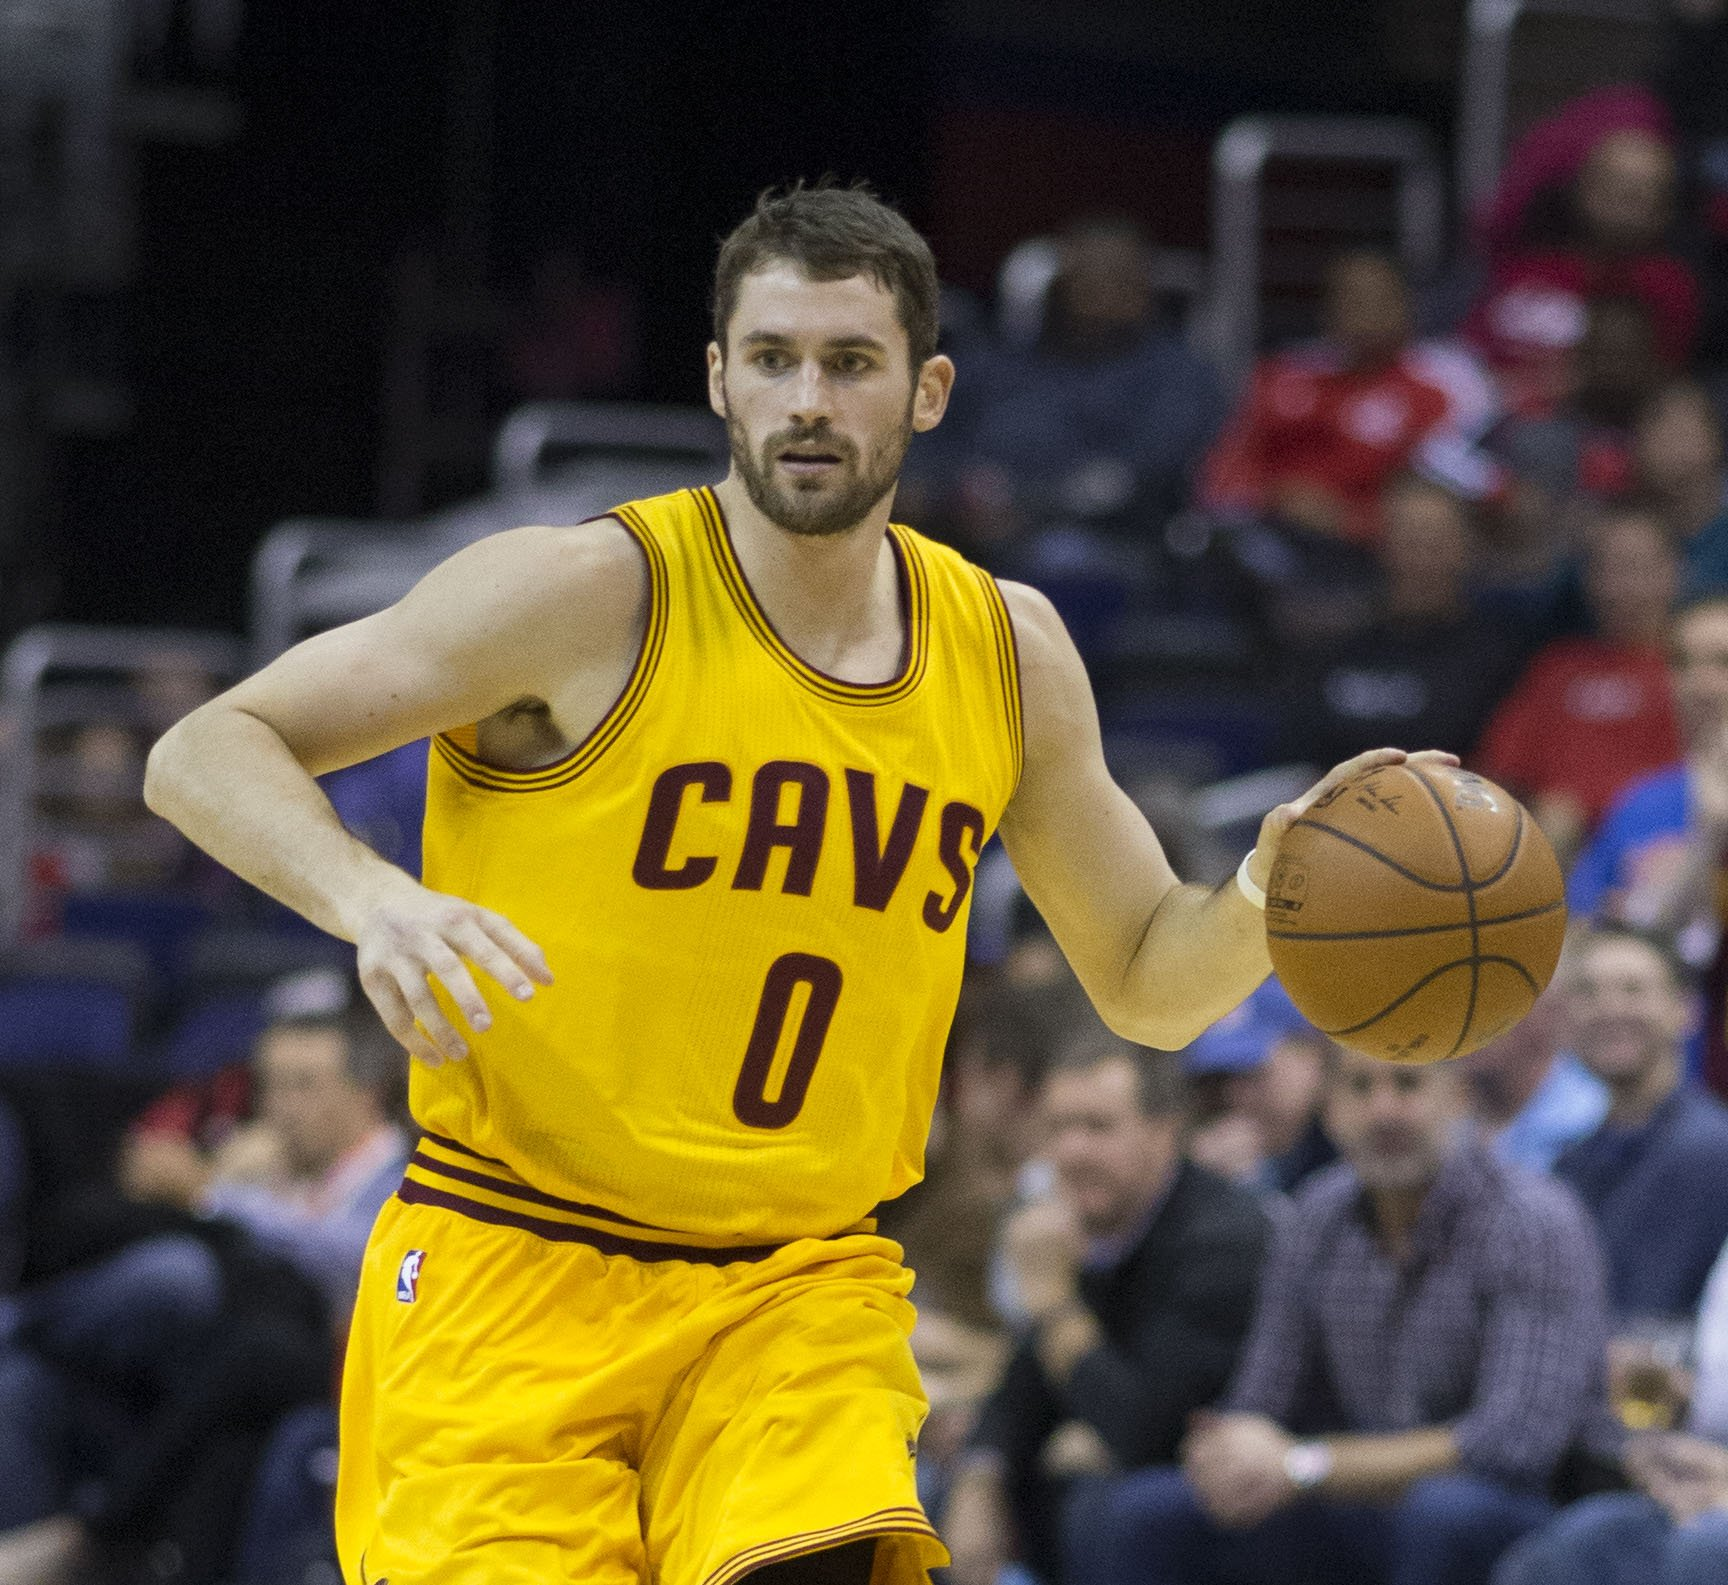 Kevin Love of the Cleveland Cavaliers in a game against the Washington Wizards at Verizon Center on November 21, 2014 in Washington, DC. | Photo: Keith Allison from Hanover, MD, USA, CC BY-SA 2.0, Wikimedia Commons